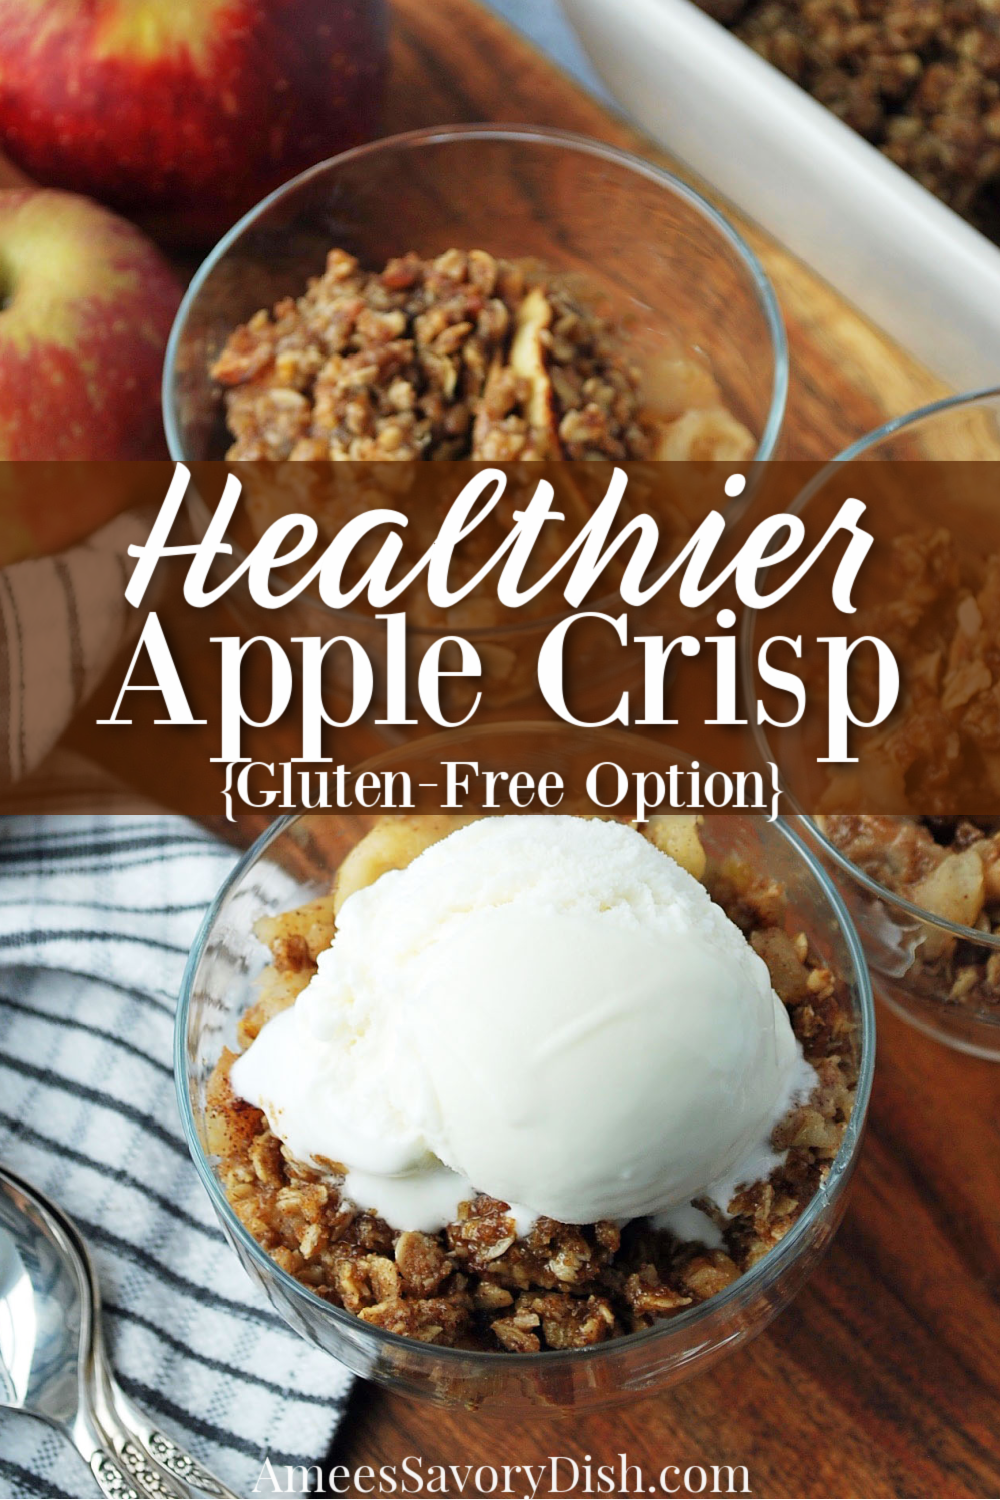 This healthier apple crisp recipe is a lightened-up version of a favorite classic fall dessert using whole grains and coconut sugar, and just as amazing as the original version! #applecrisp #healthierapplecrisp #falldesserts #healthierdesserts #apples via @Ameessavorydish